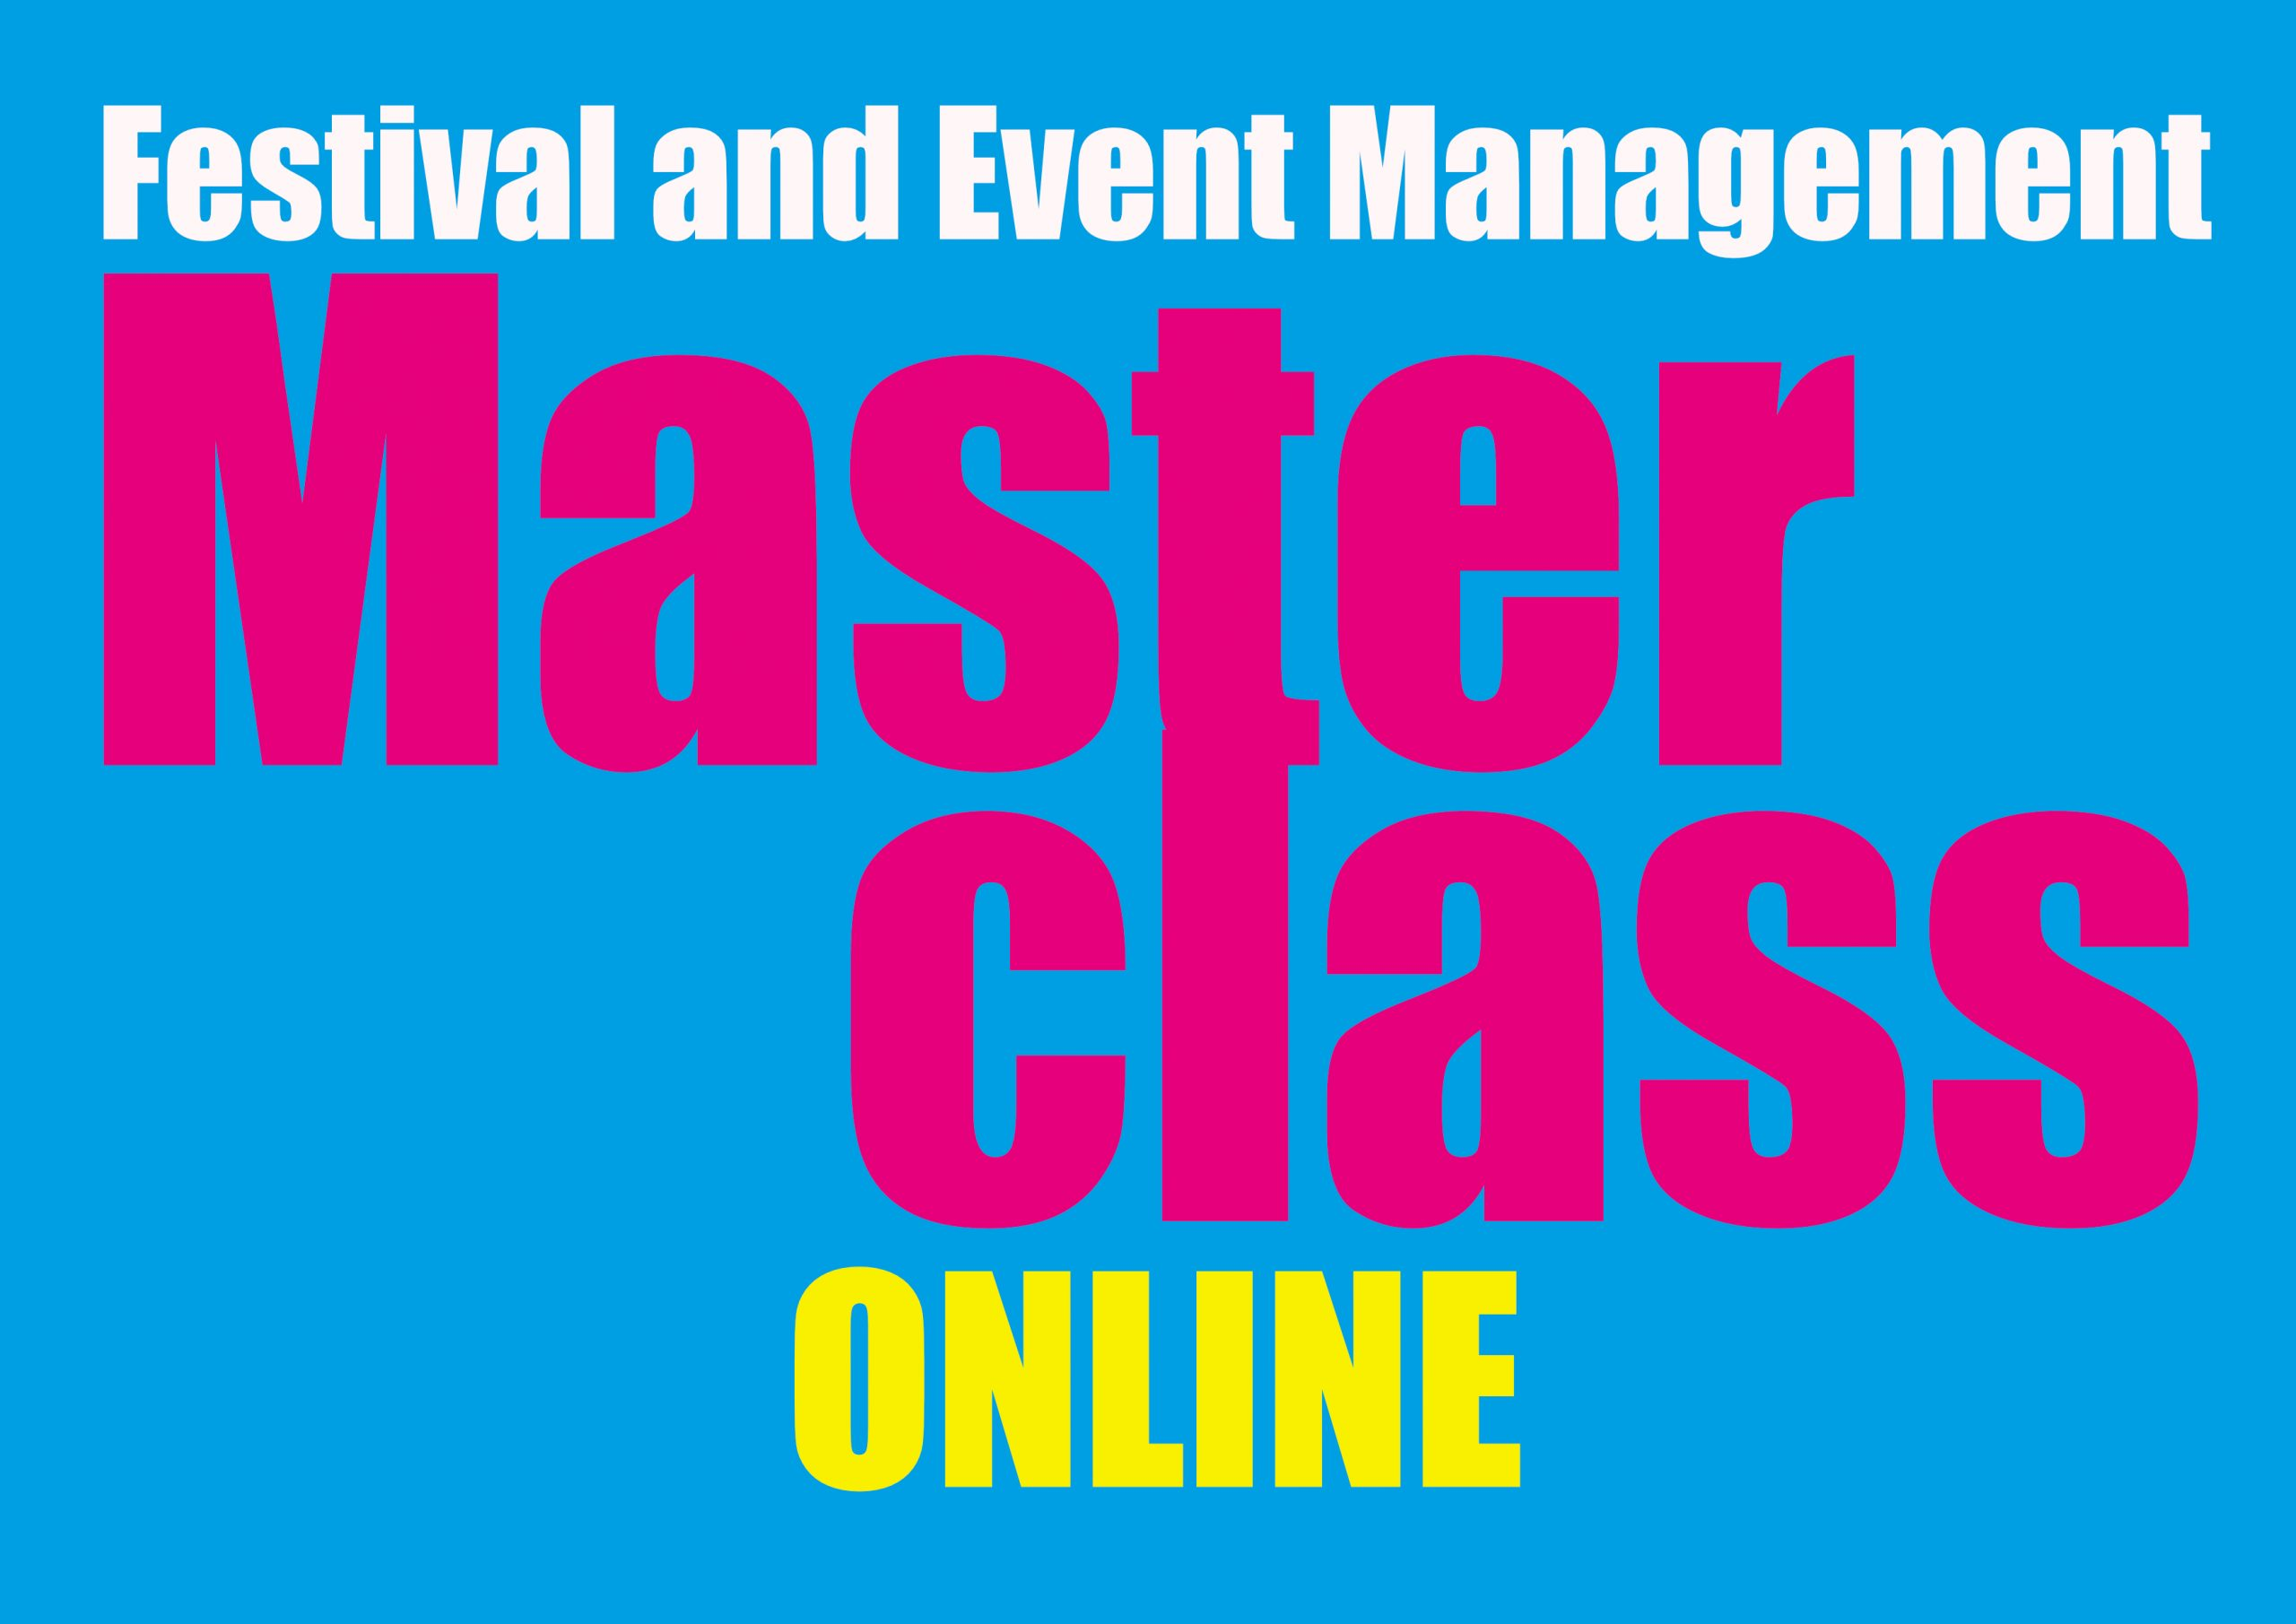 Online Festival and Event Management Masterclass - 12 October 2020